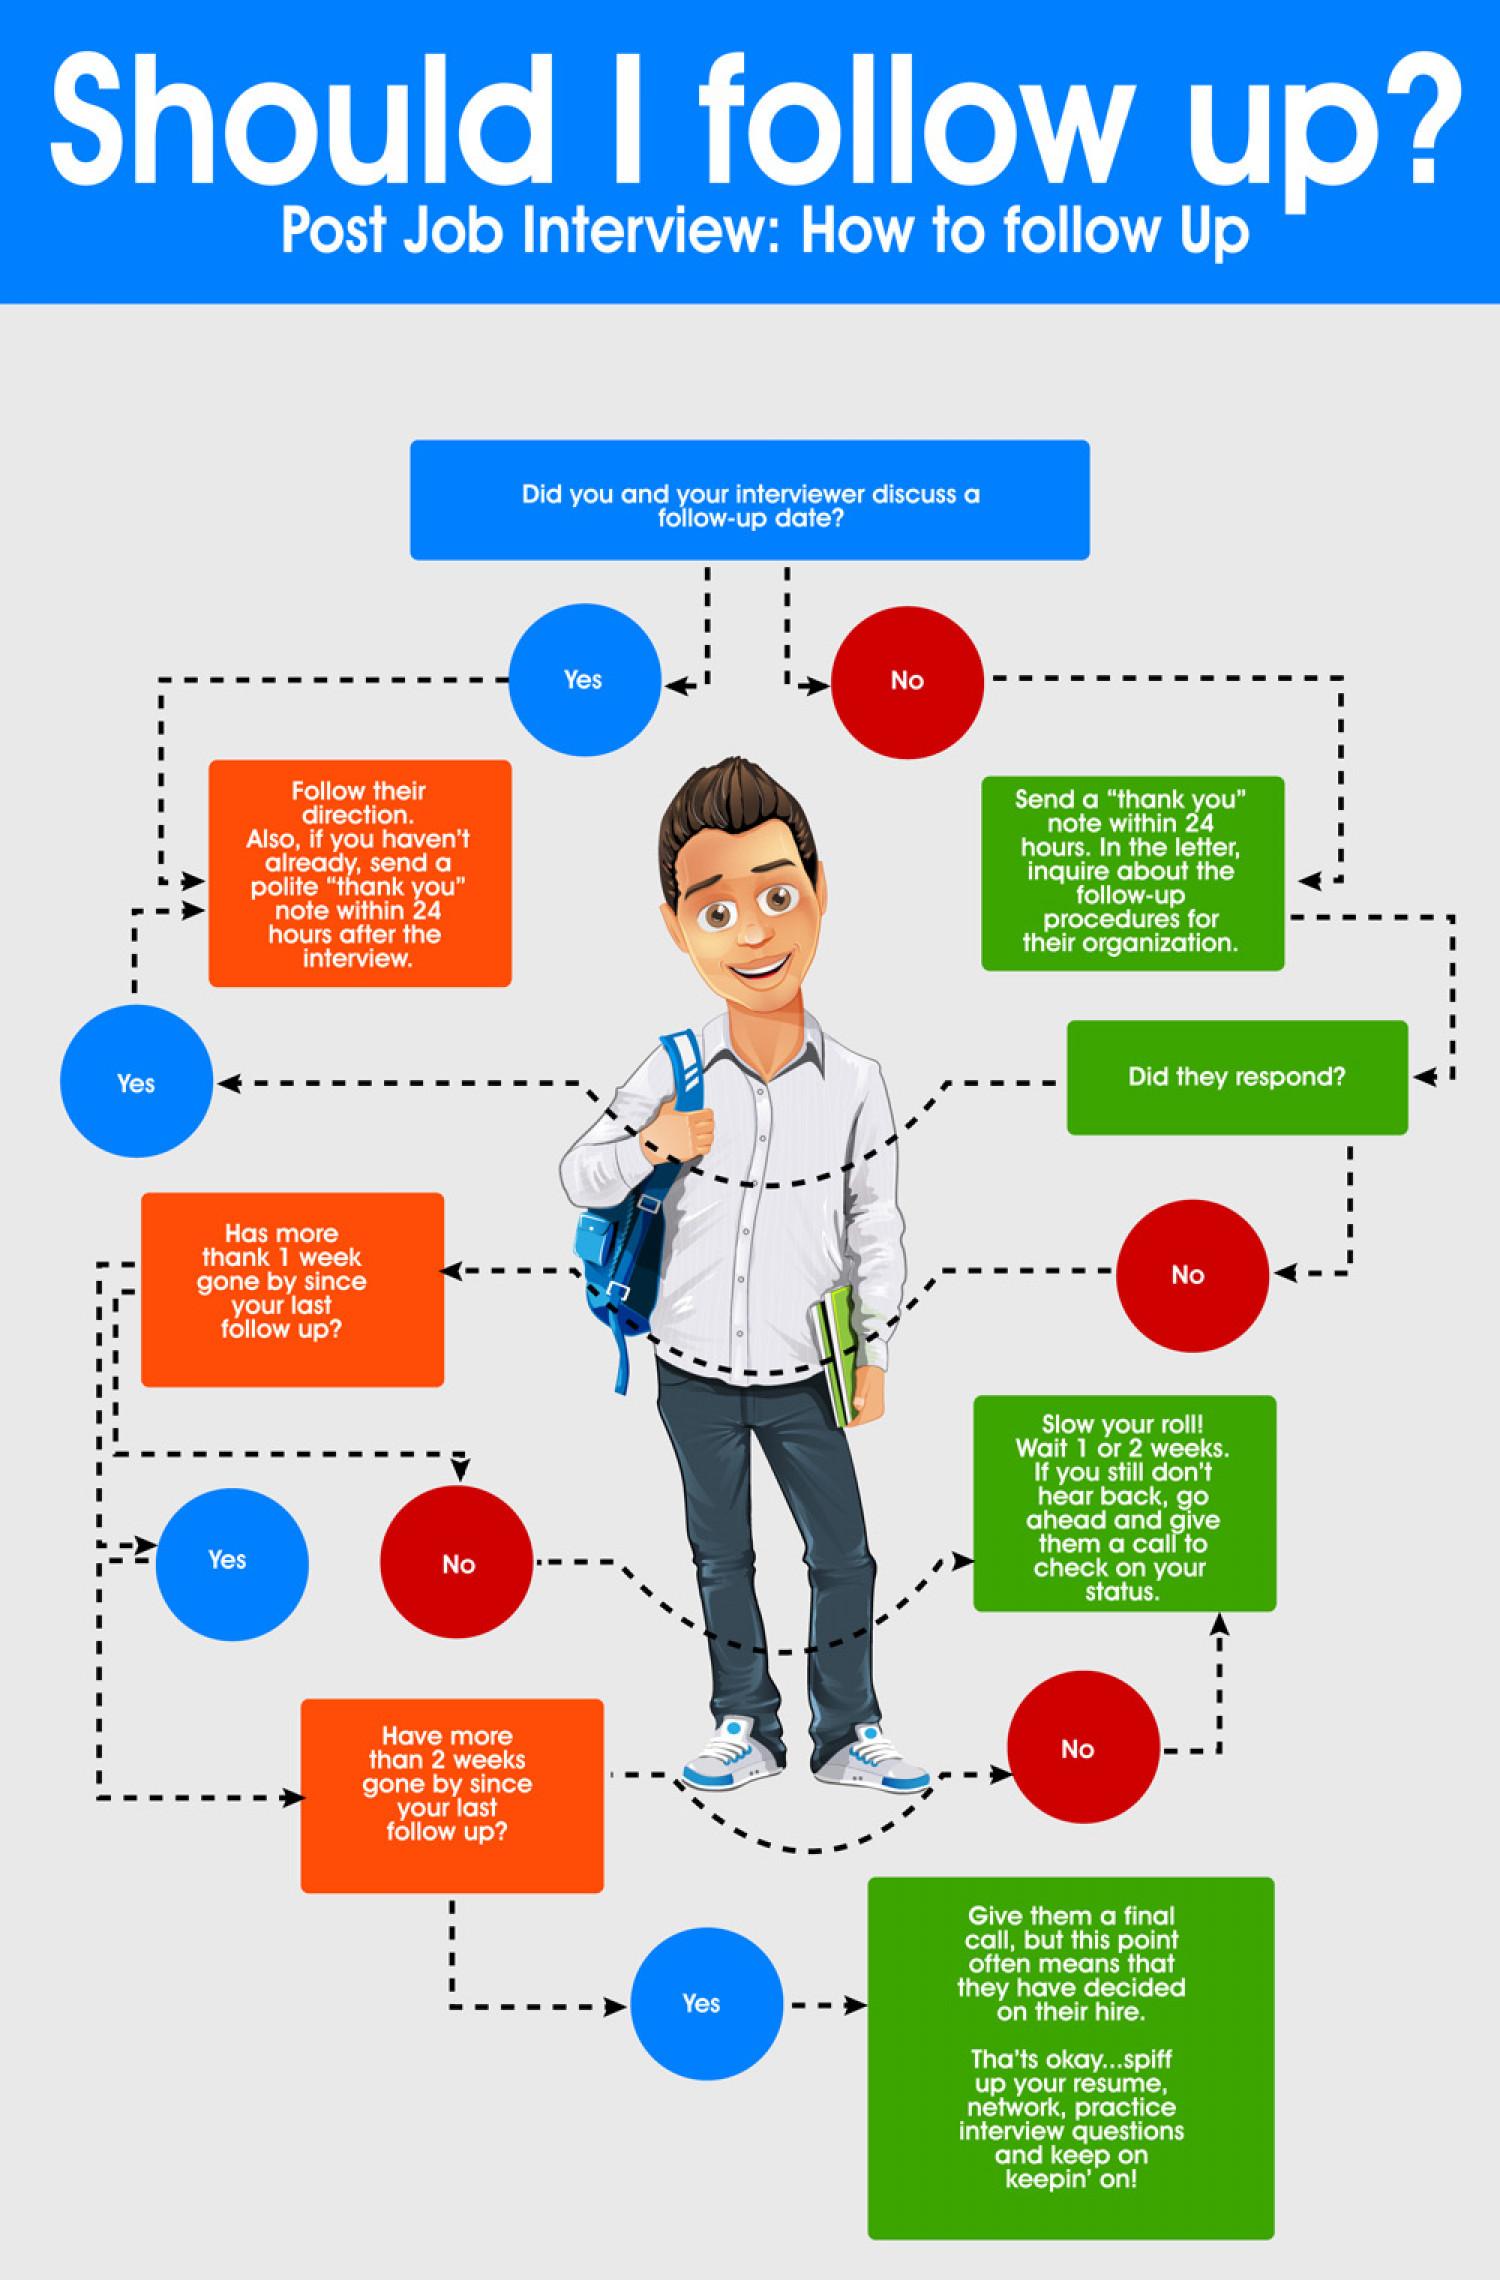 Should I follow up? Infographic